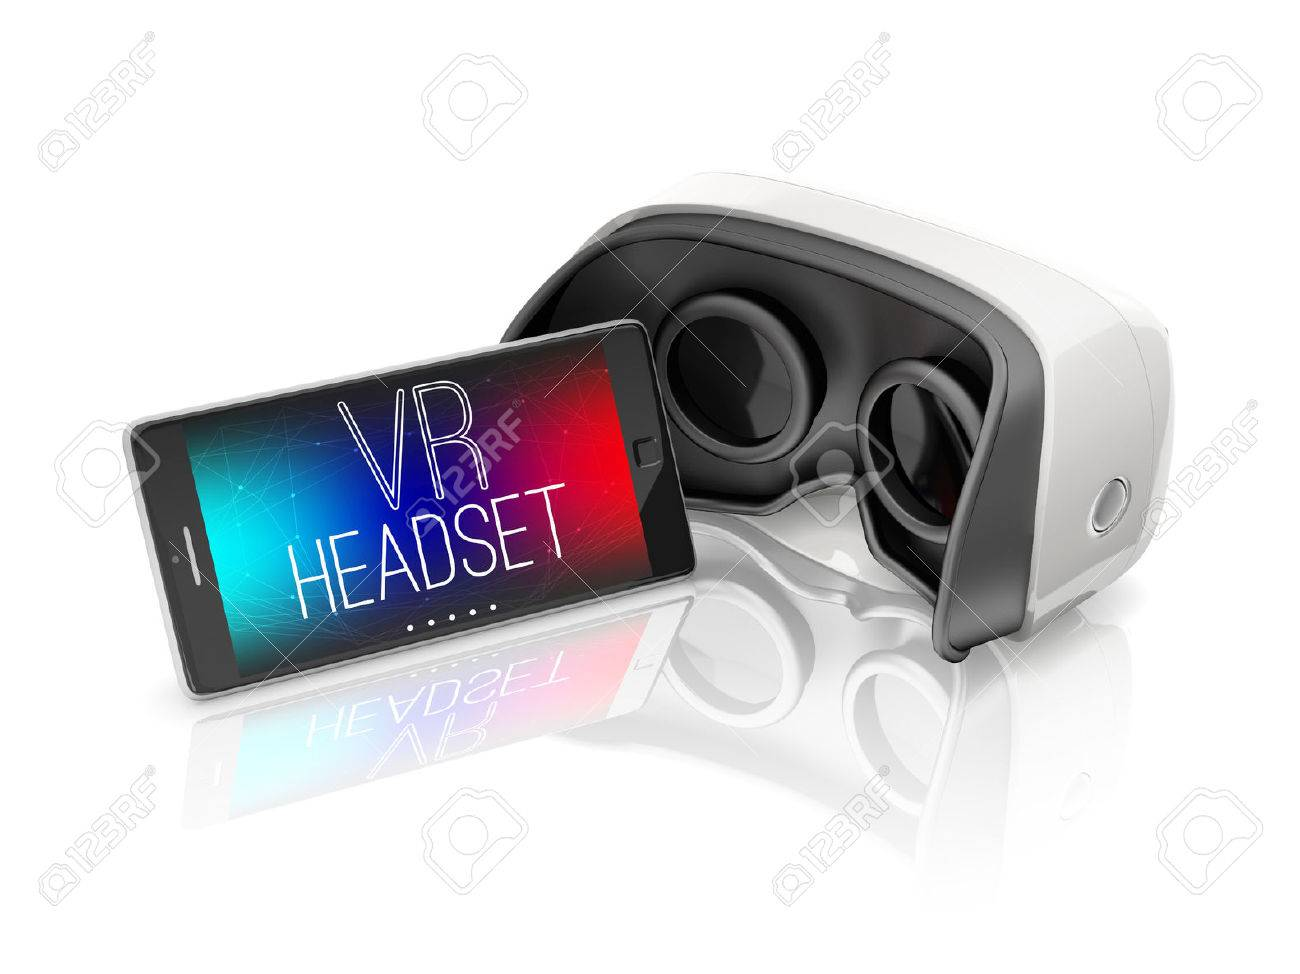 virtual reality headset and mobile smartphone on white background - 53106419